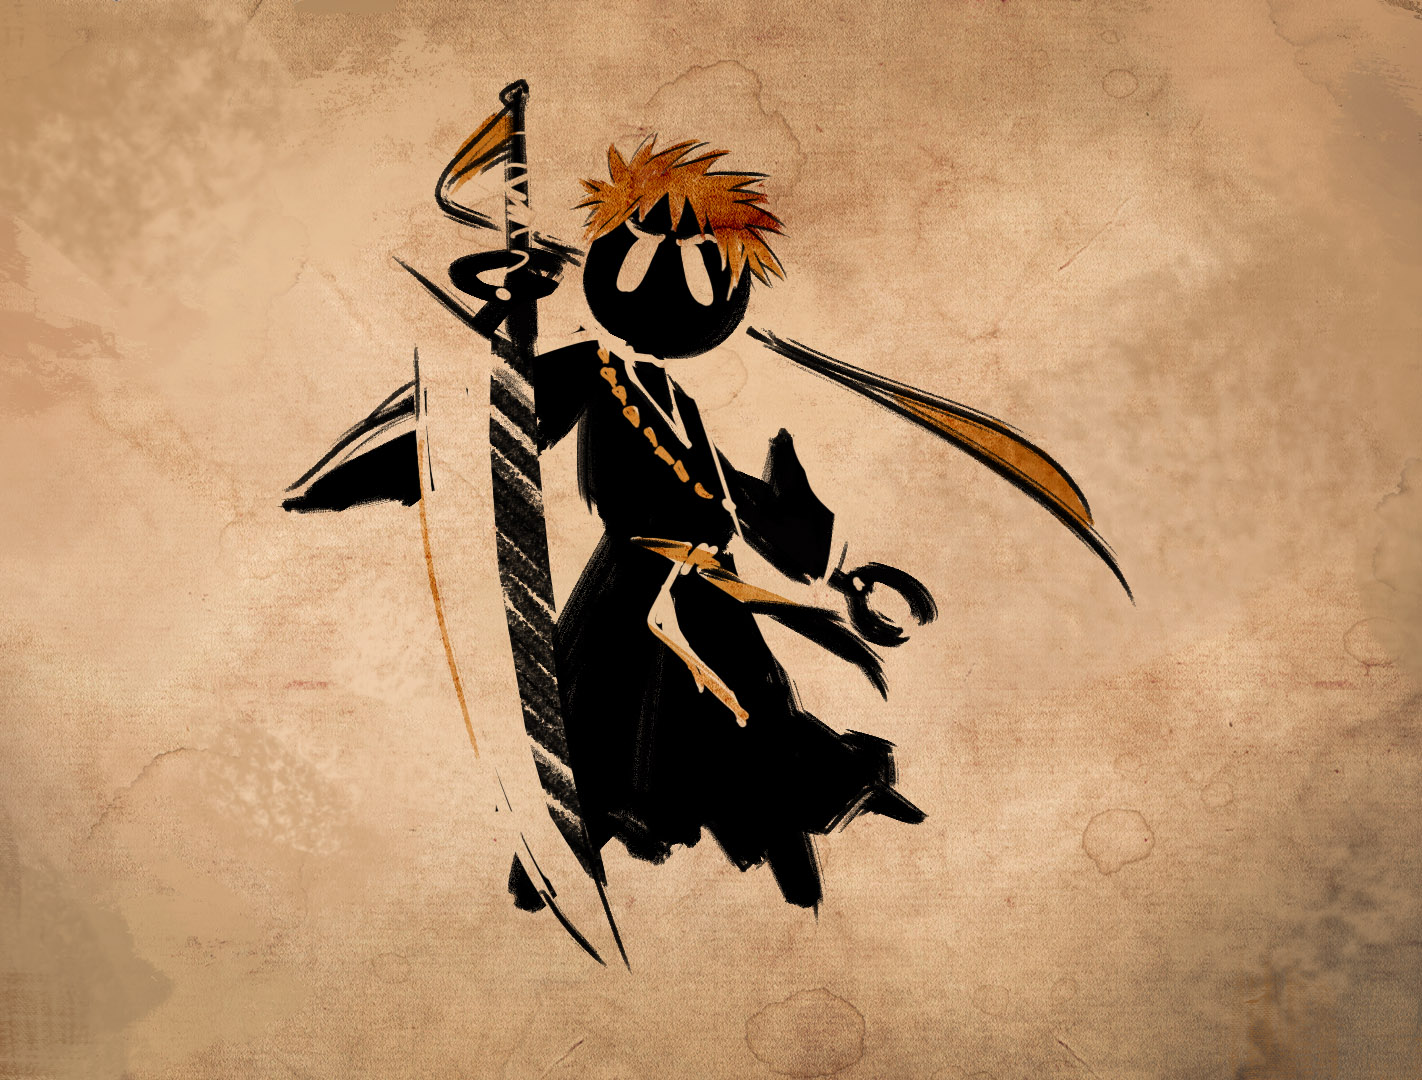 Felipe de Barros — Ichigo Taleoid (fan request on stream)